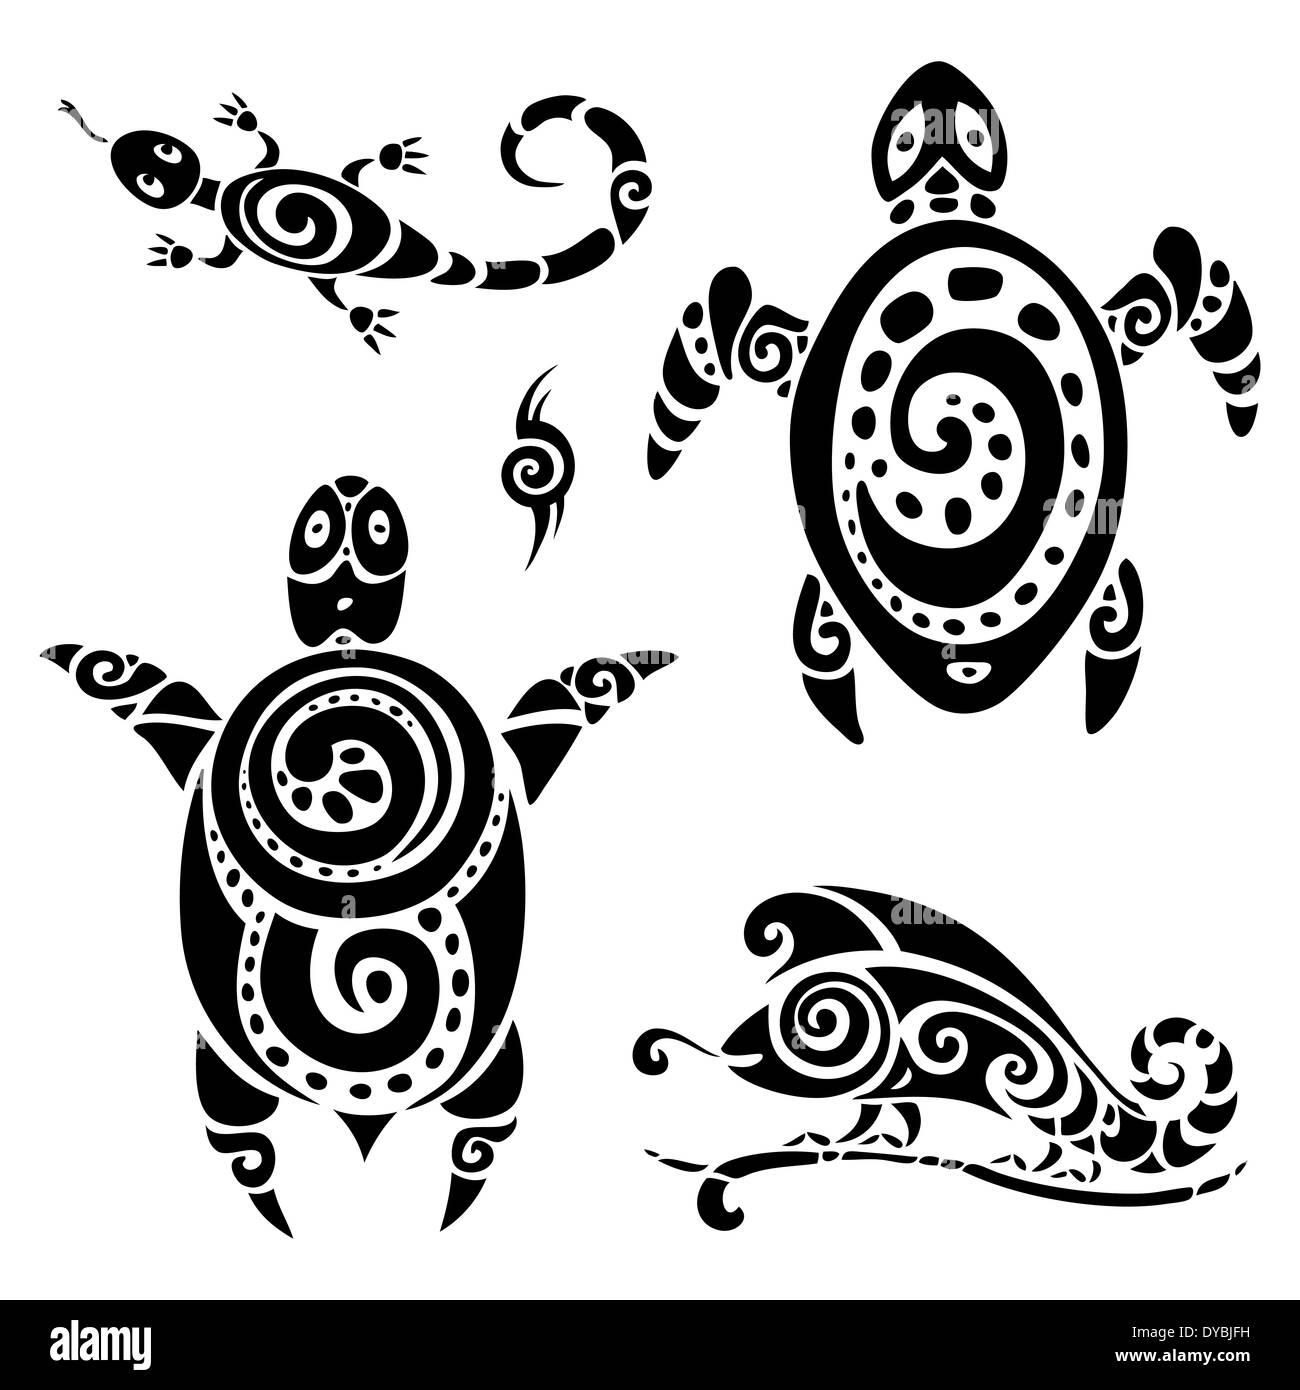 maori tattoo stockfotos maori tattoo bilder alamy. Black Bedroom Furniture Sets. Home Design Ideas